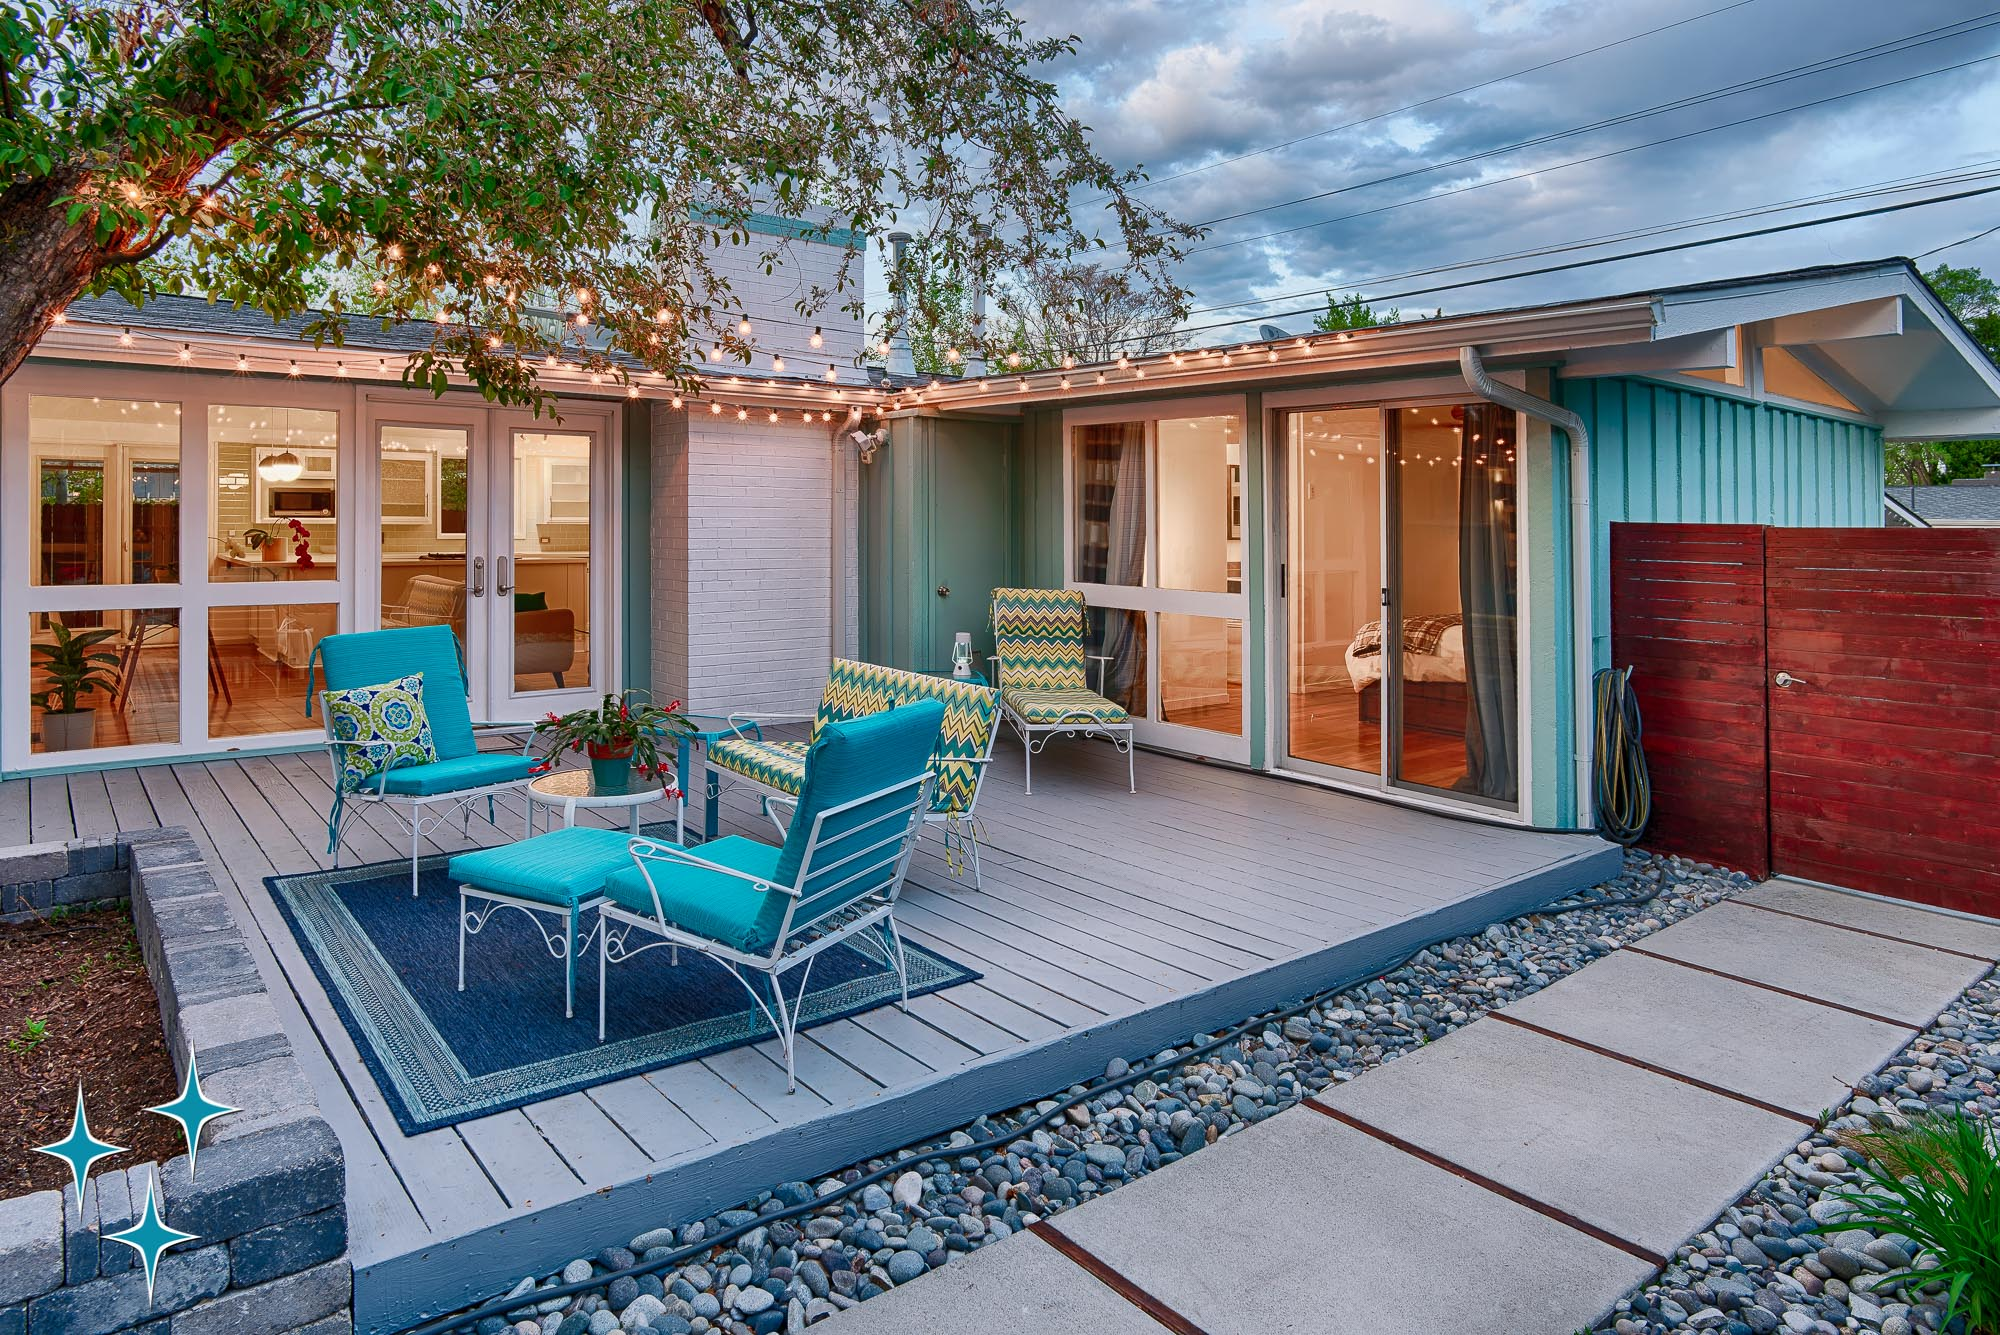 Indoor-outdoor connection at 2500 S Meade St in Denver's Harvey Park. Offered by Adrian Kinney, Broker Associate, Resident Realty South Metro